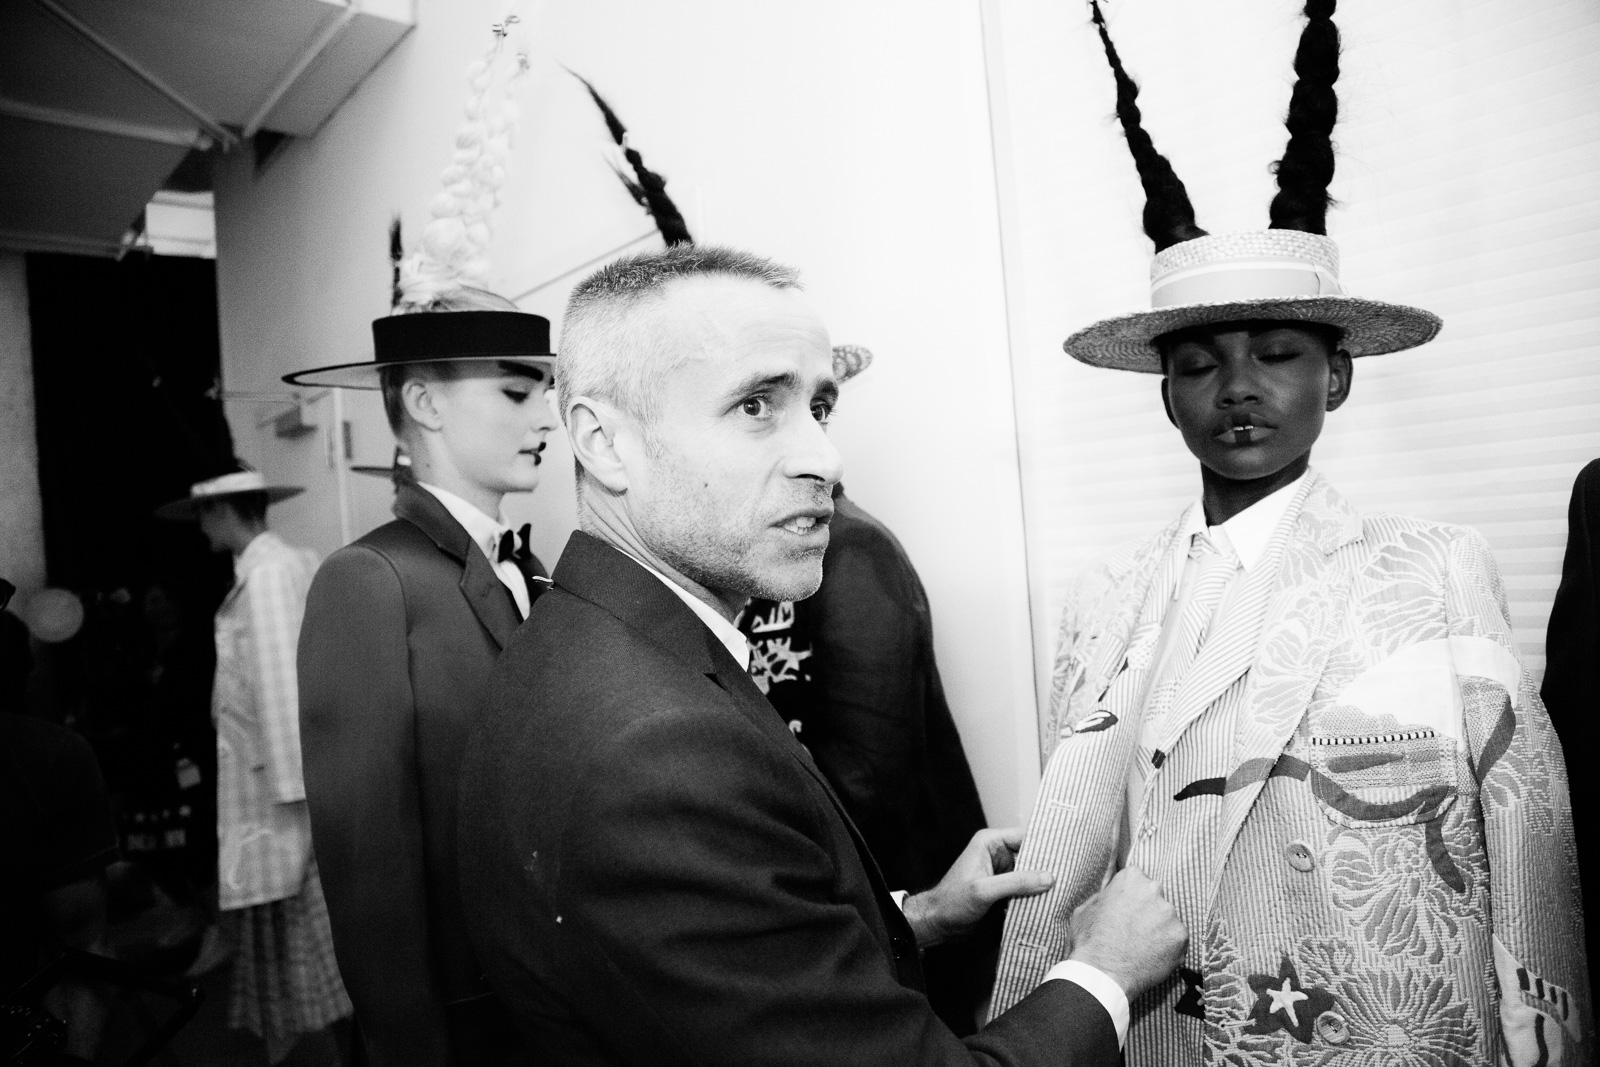 Thom Browne backstage prior the Thom Browne show as part of the New York Fashion Week Womenswear Spring/Summer 2016 at Skylight Modern on September 14, 2015 in New York City, USA.